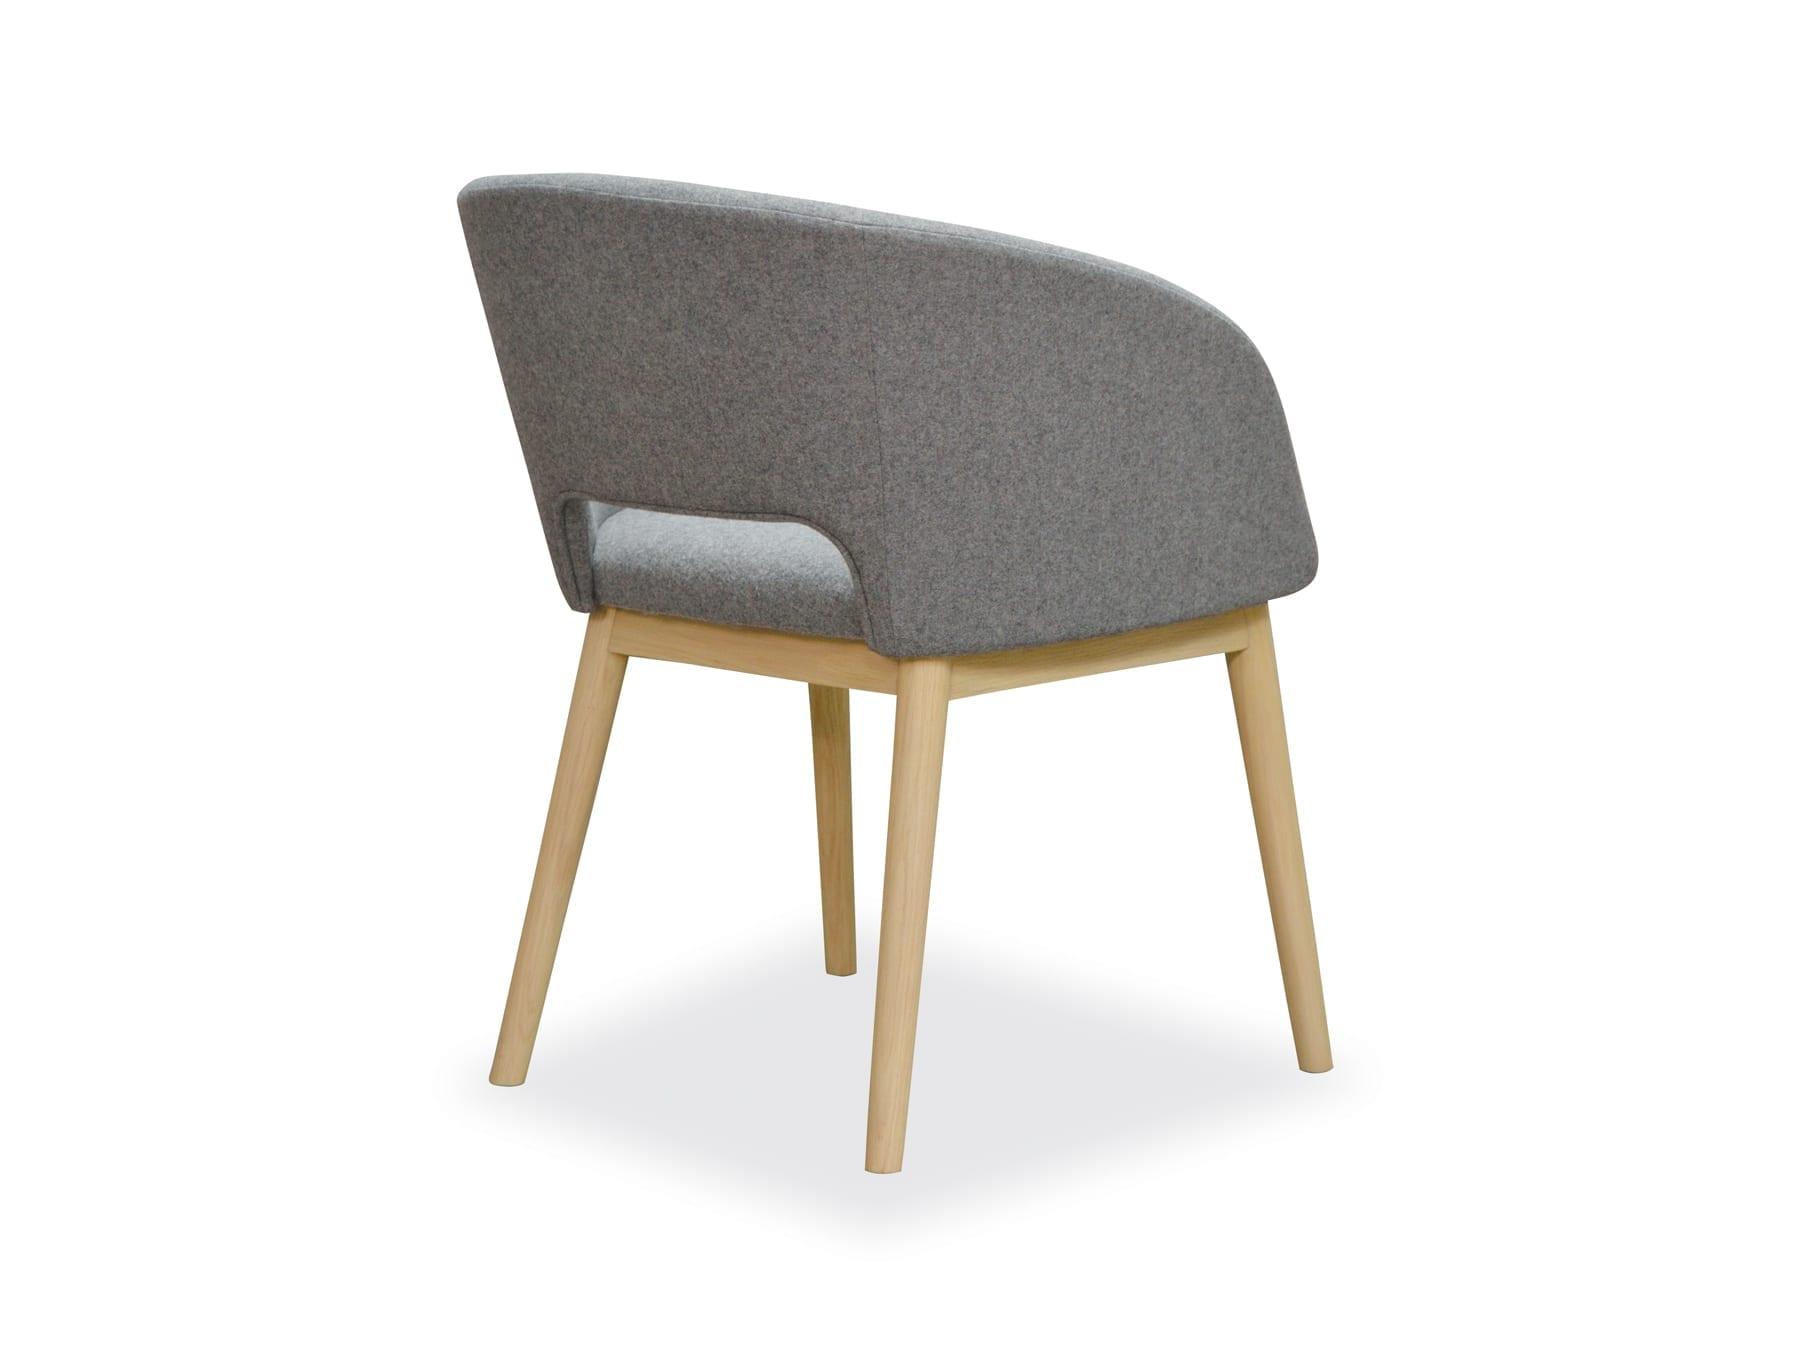 Sketch Roundi Dining Chair 2